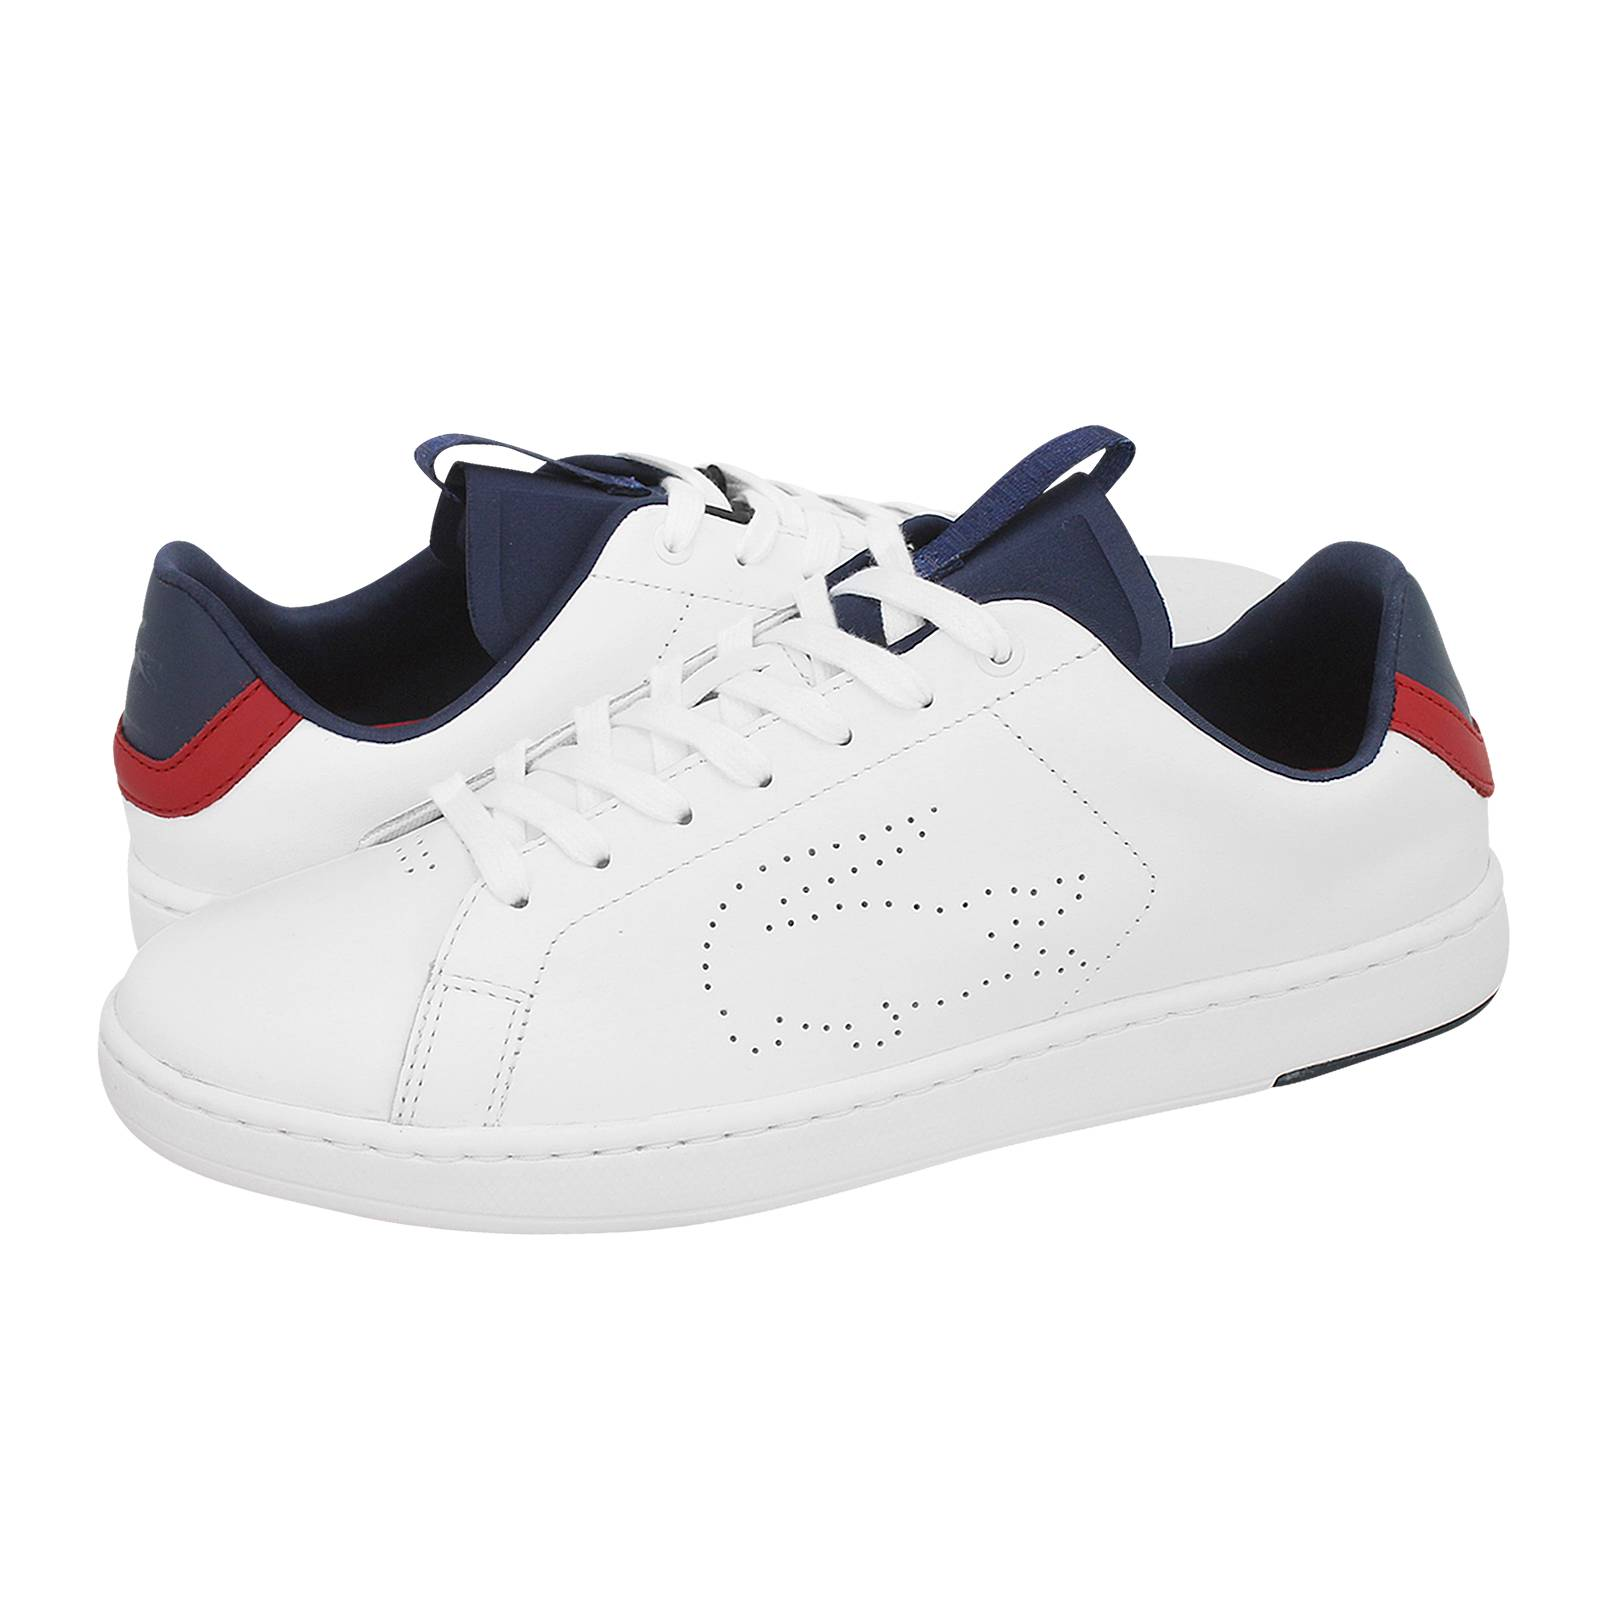 a5261ba9ca29 Carnaby Evo Light-WT - Lacoste Men s casual shoes made of leather ...